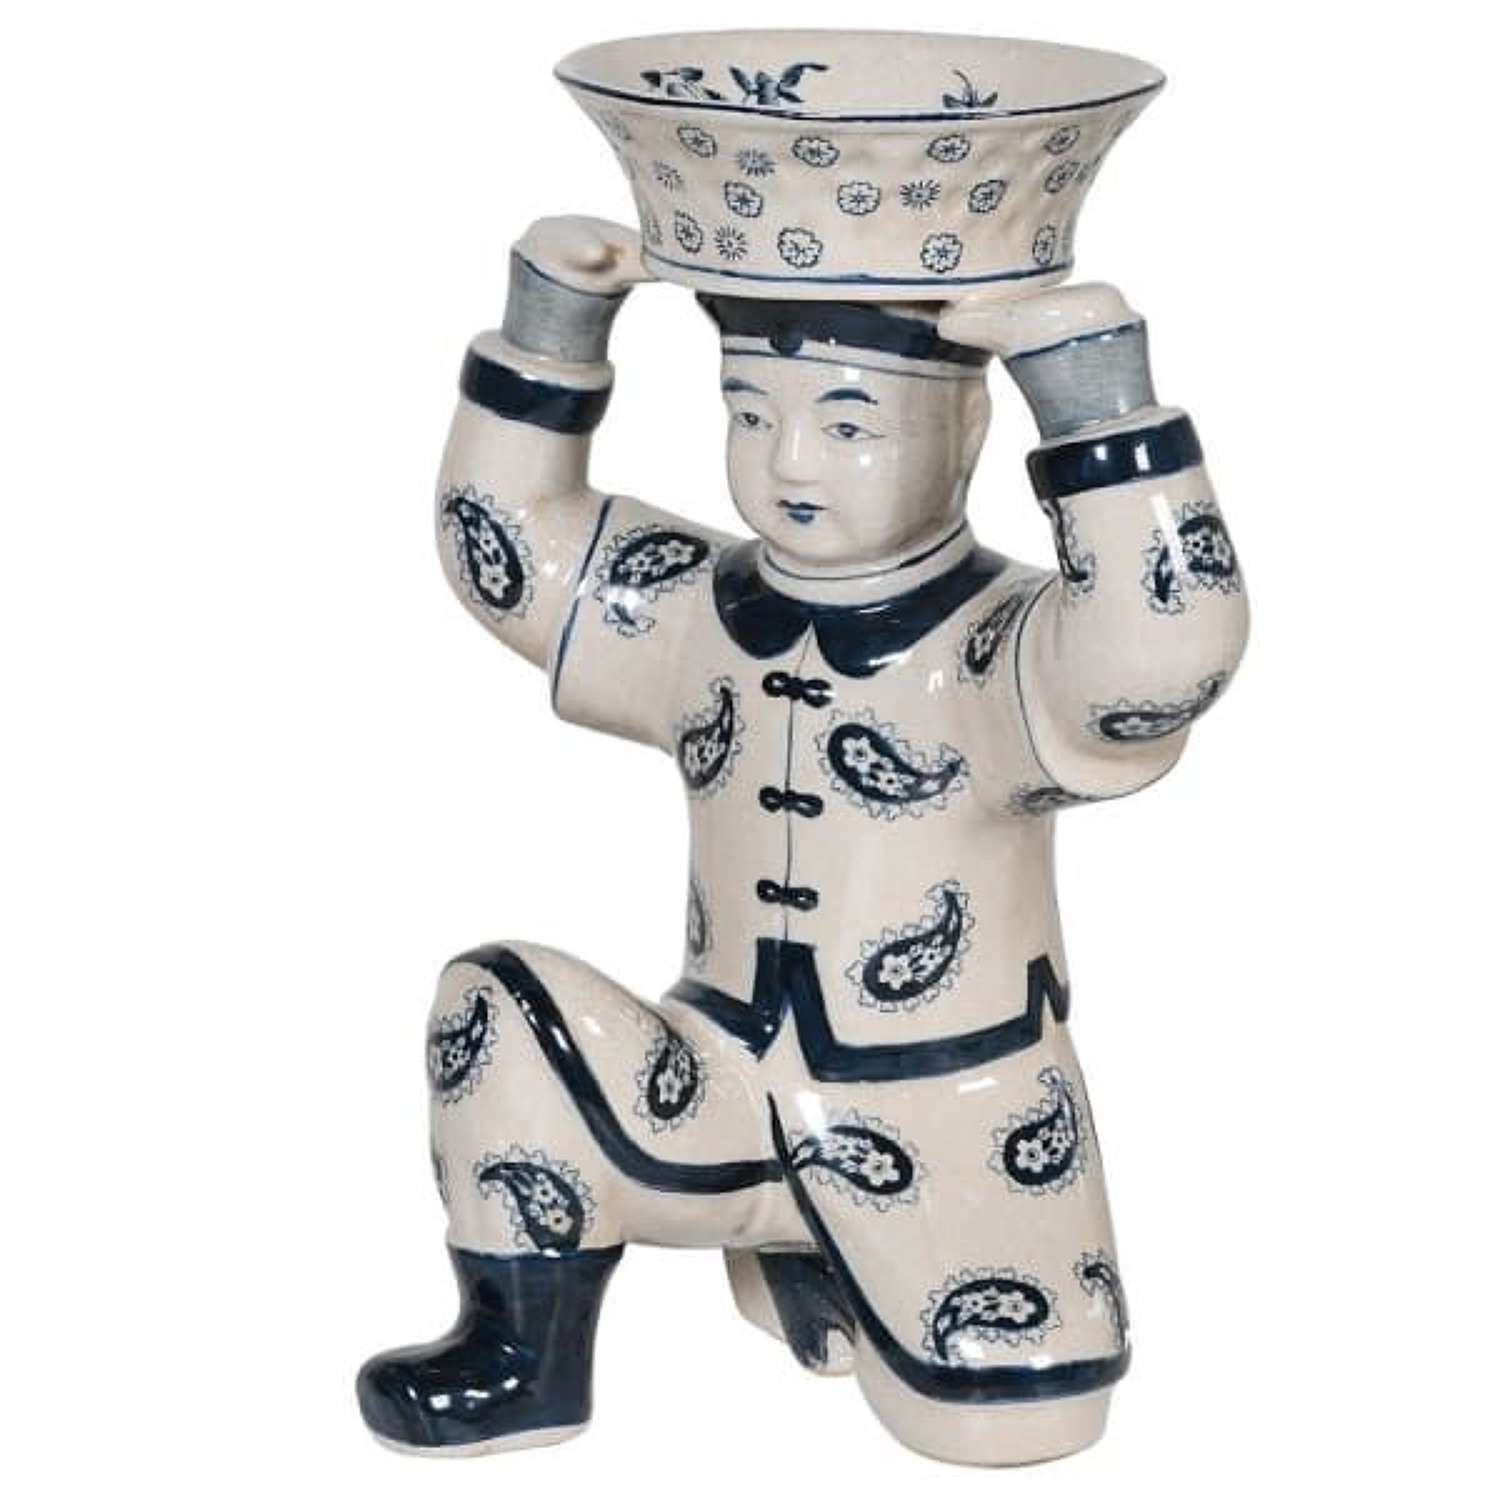 Kneeling Ceramic Warrior